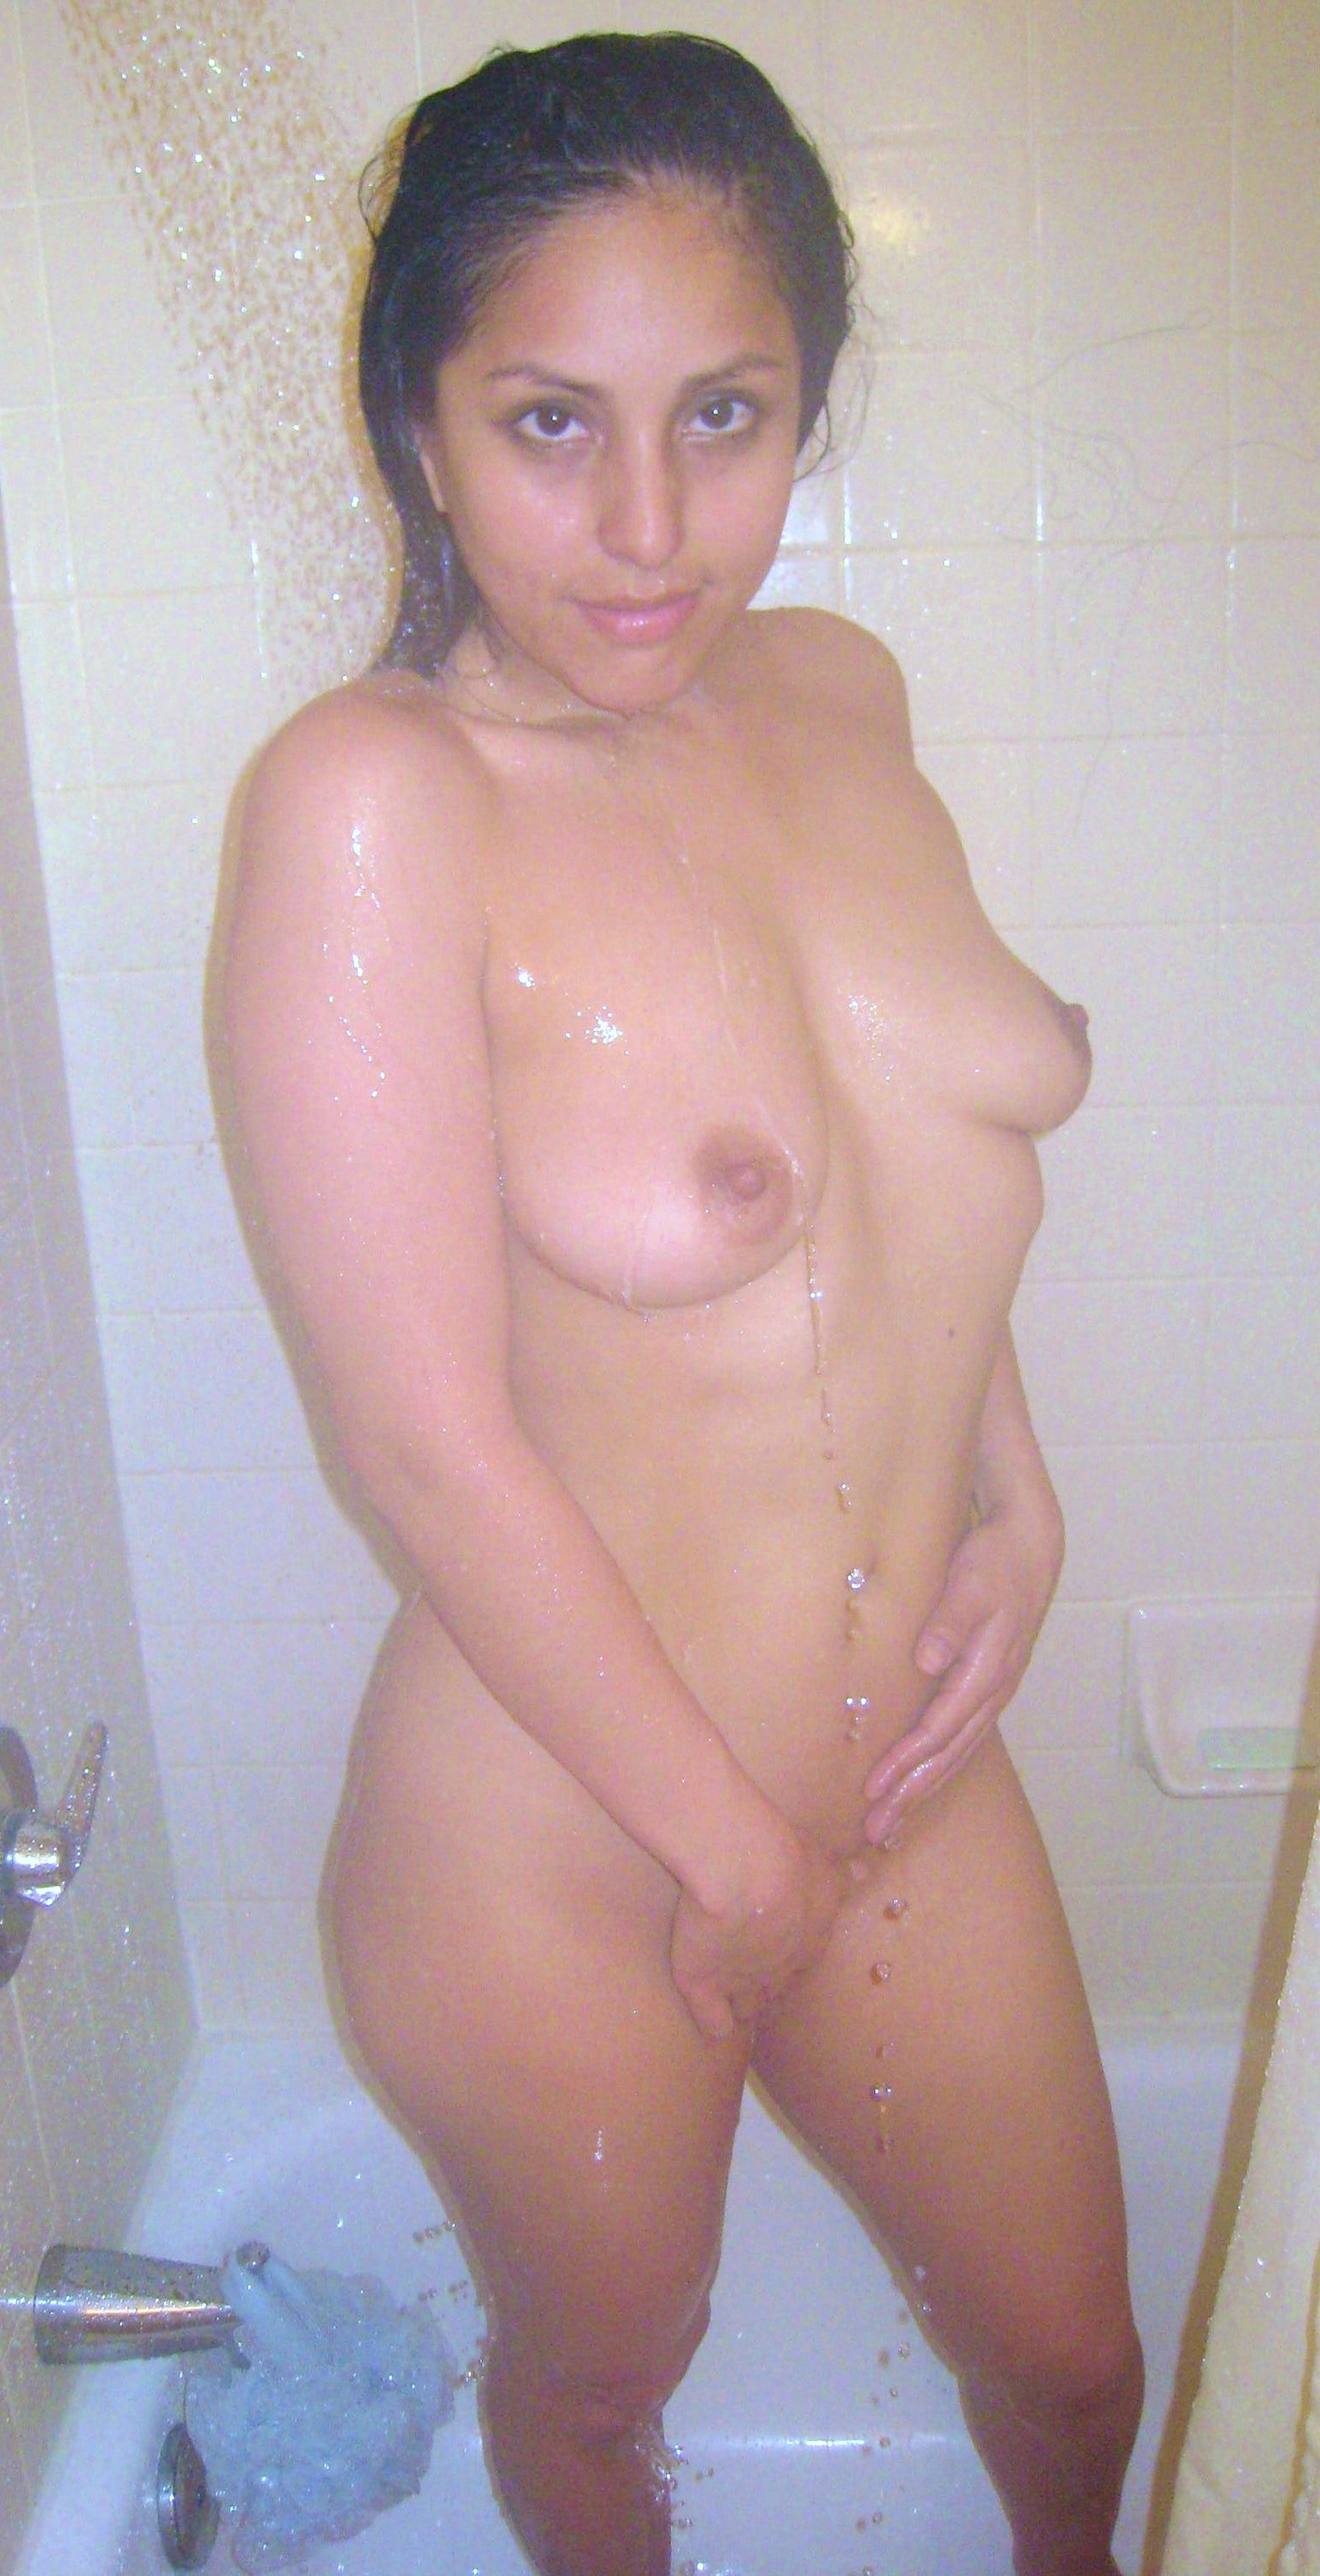 Perky young hairy mom pics